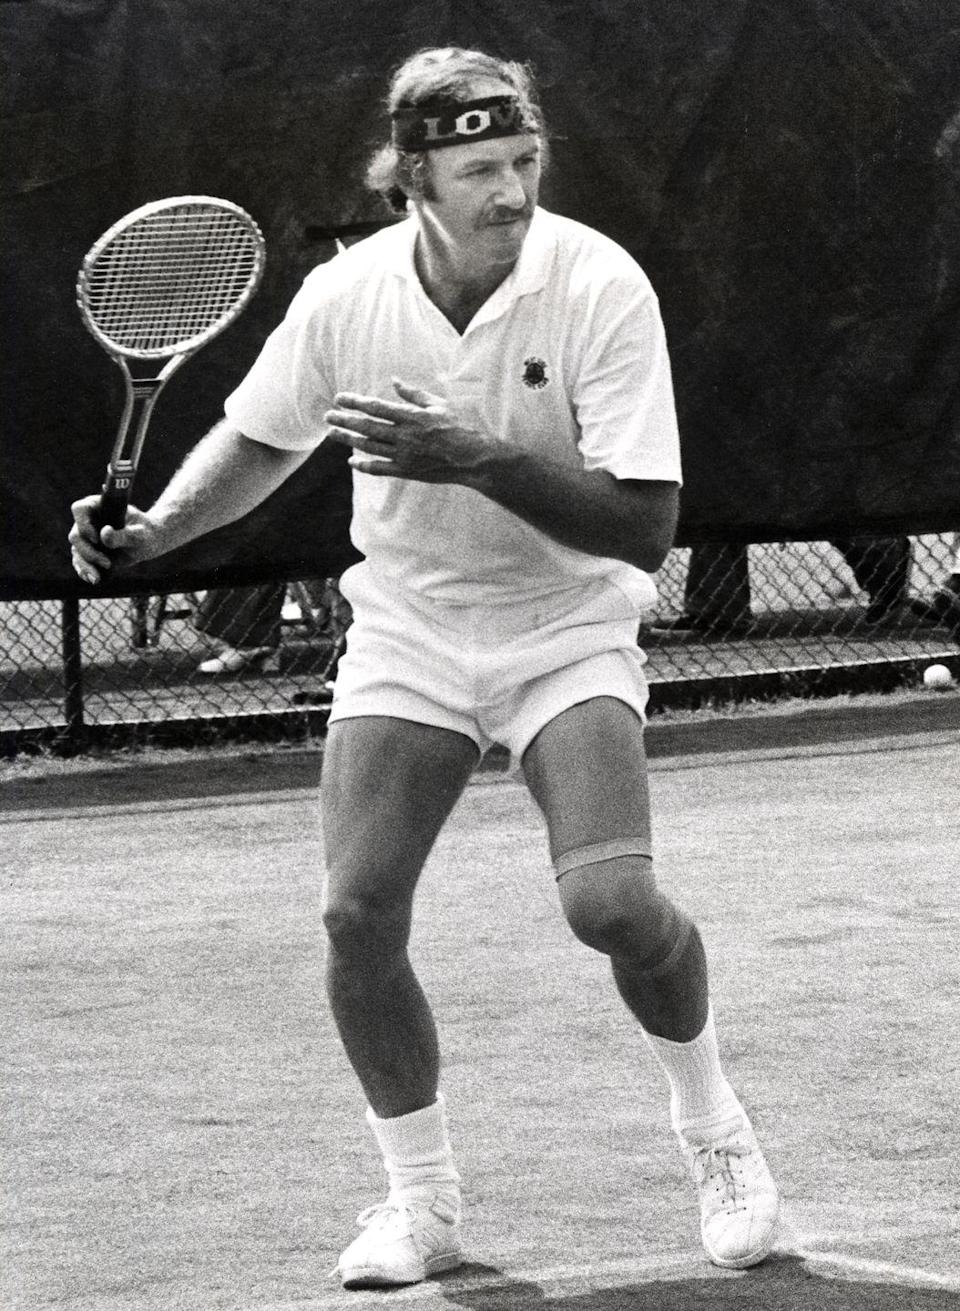 <p><em>Bonnie and Clyde</em> star Gene Hackman stands at the ready during a tennis match in 1973.</p>